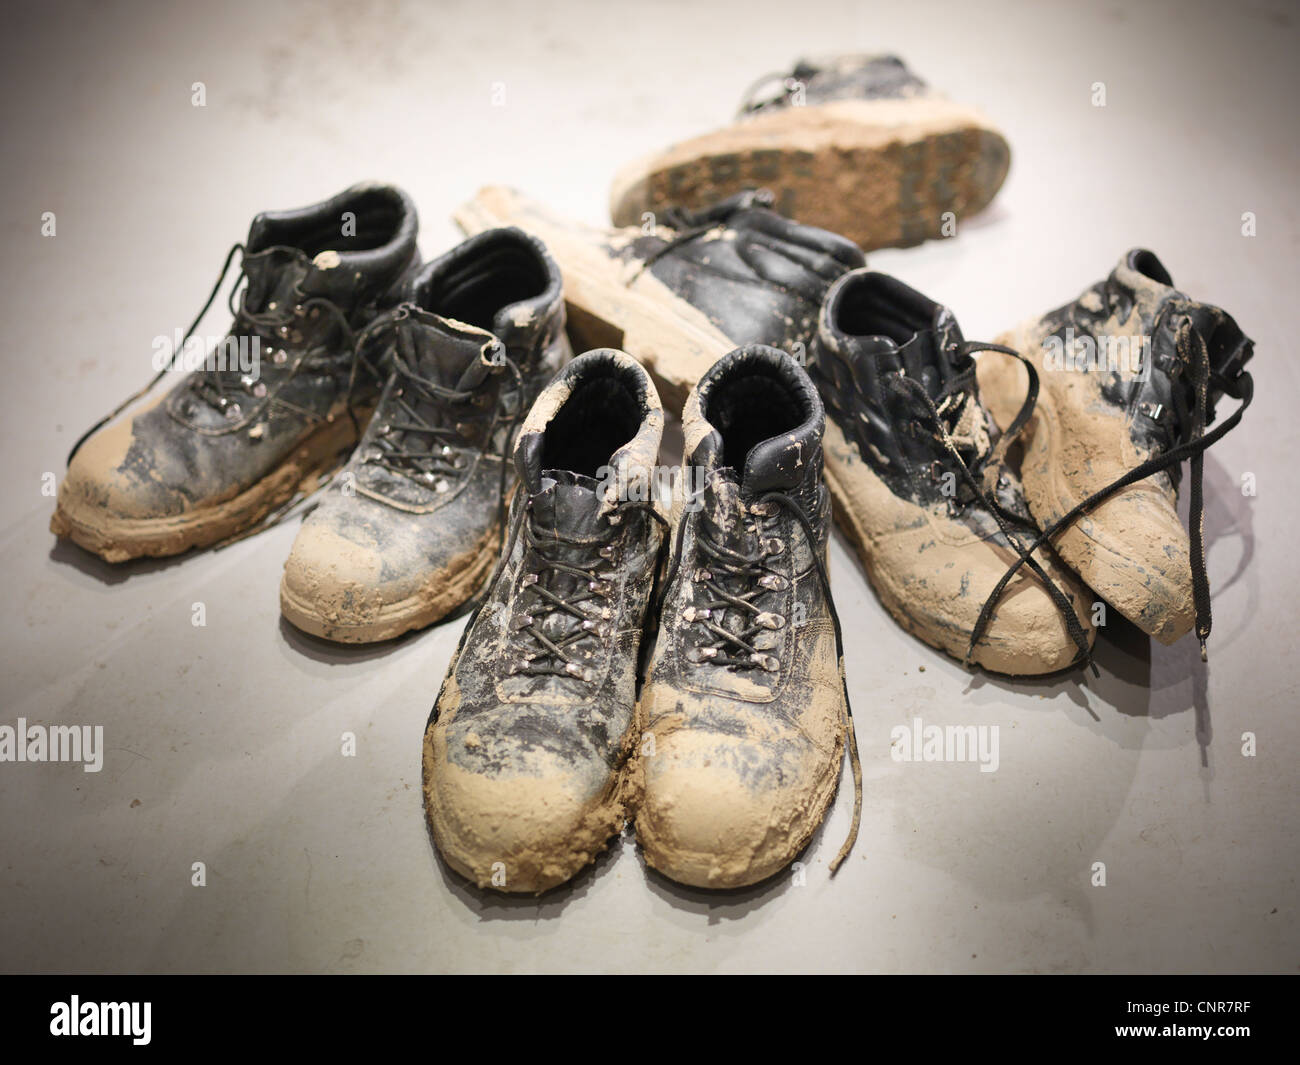 Close up of muddy work boots - Stock Image